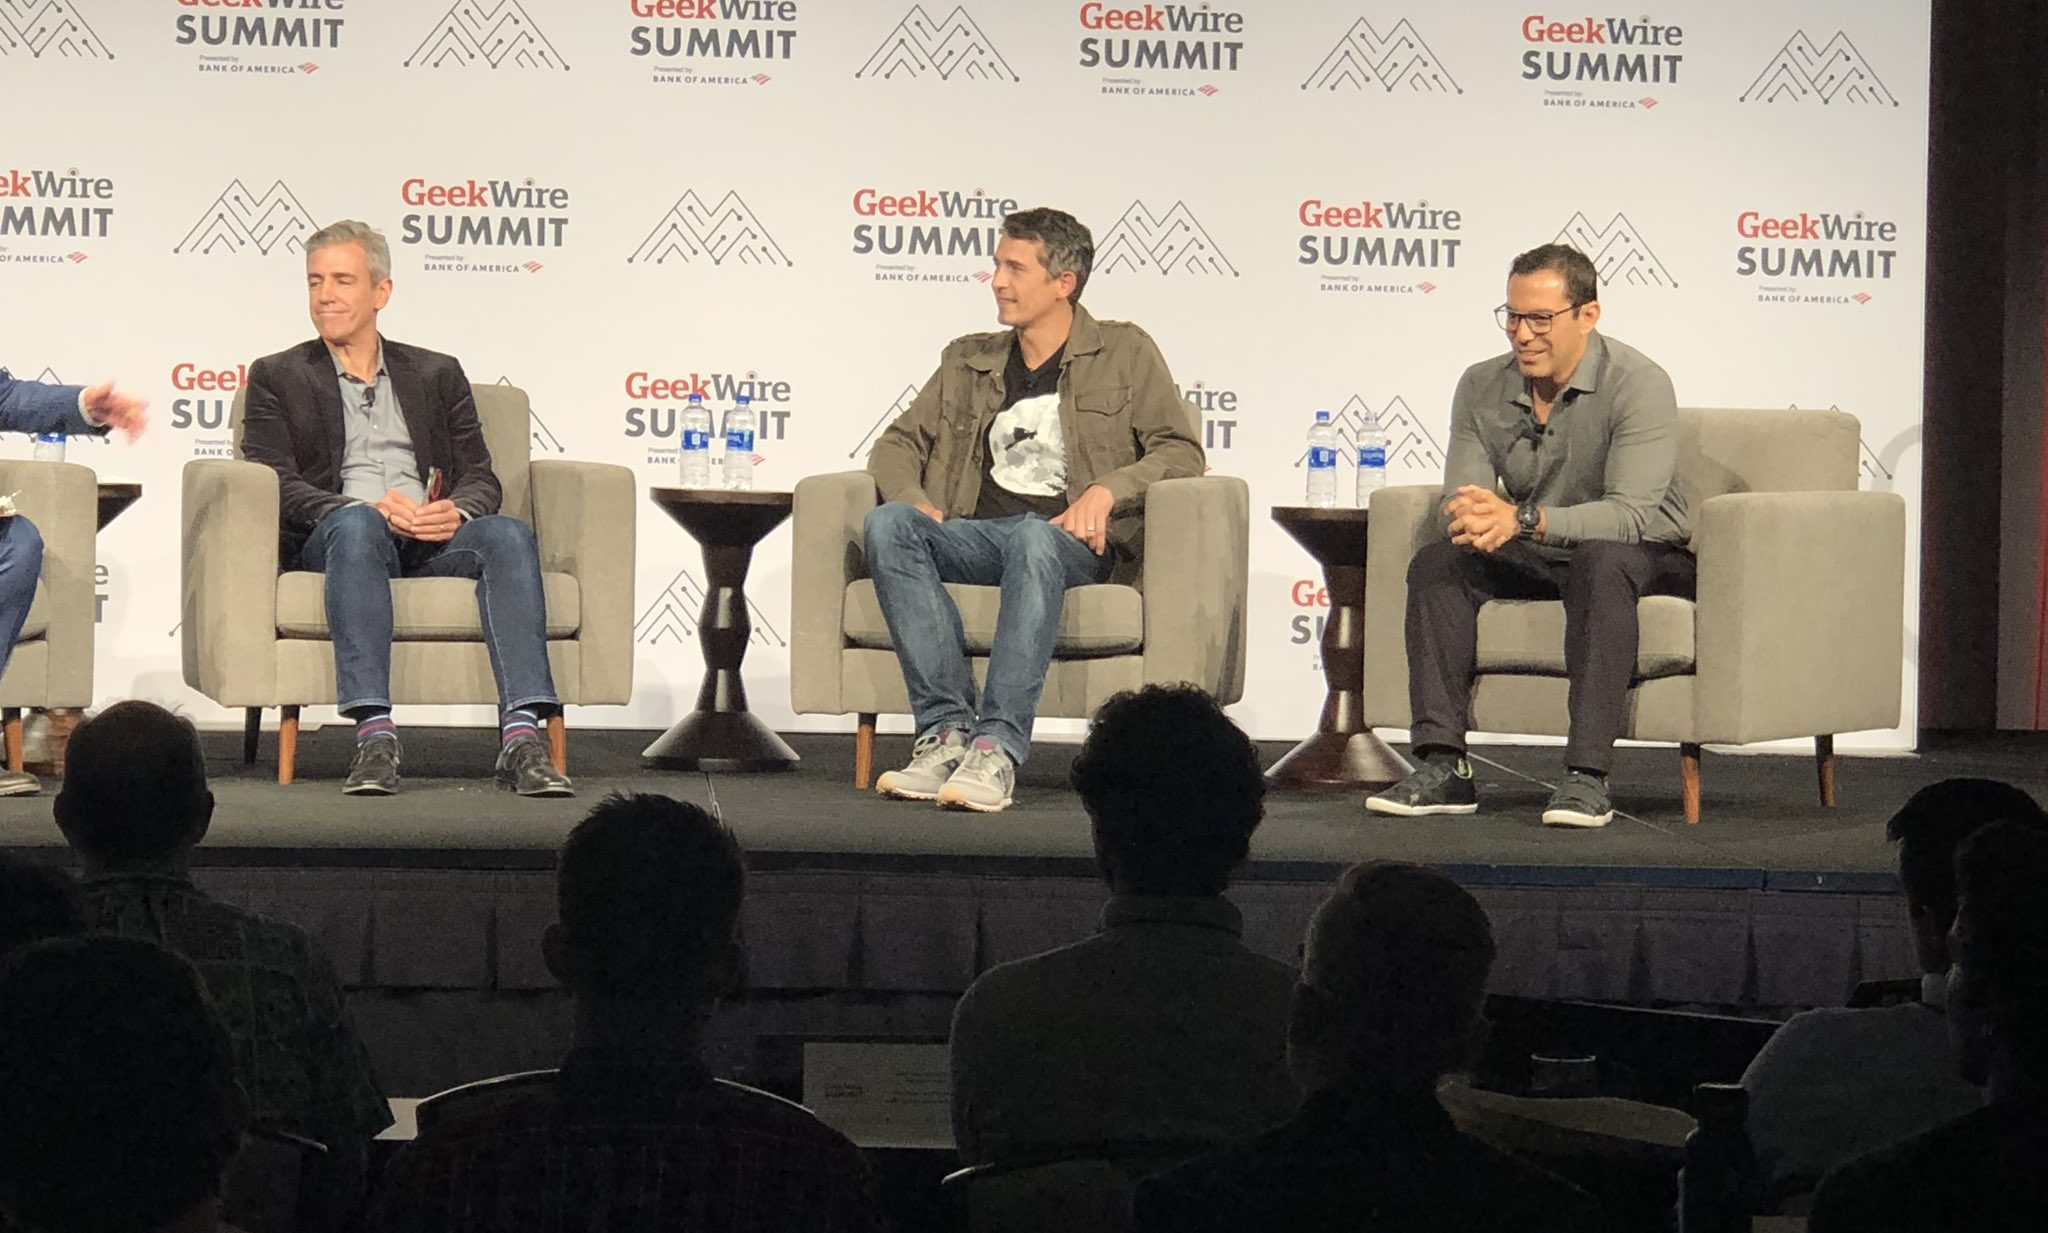 Eugenio Pace at GeekWire summit